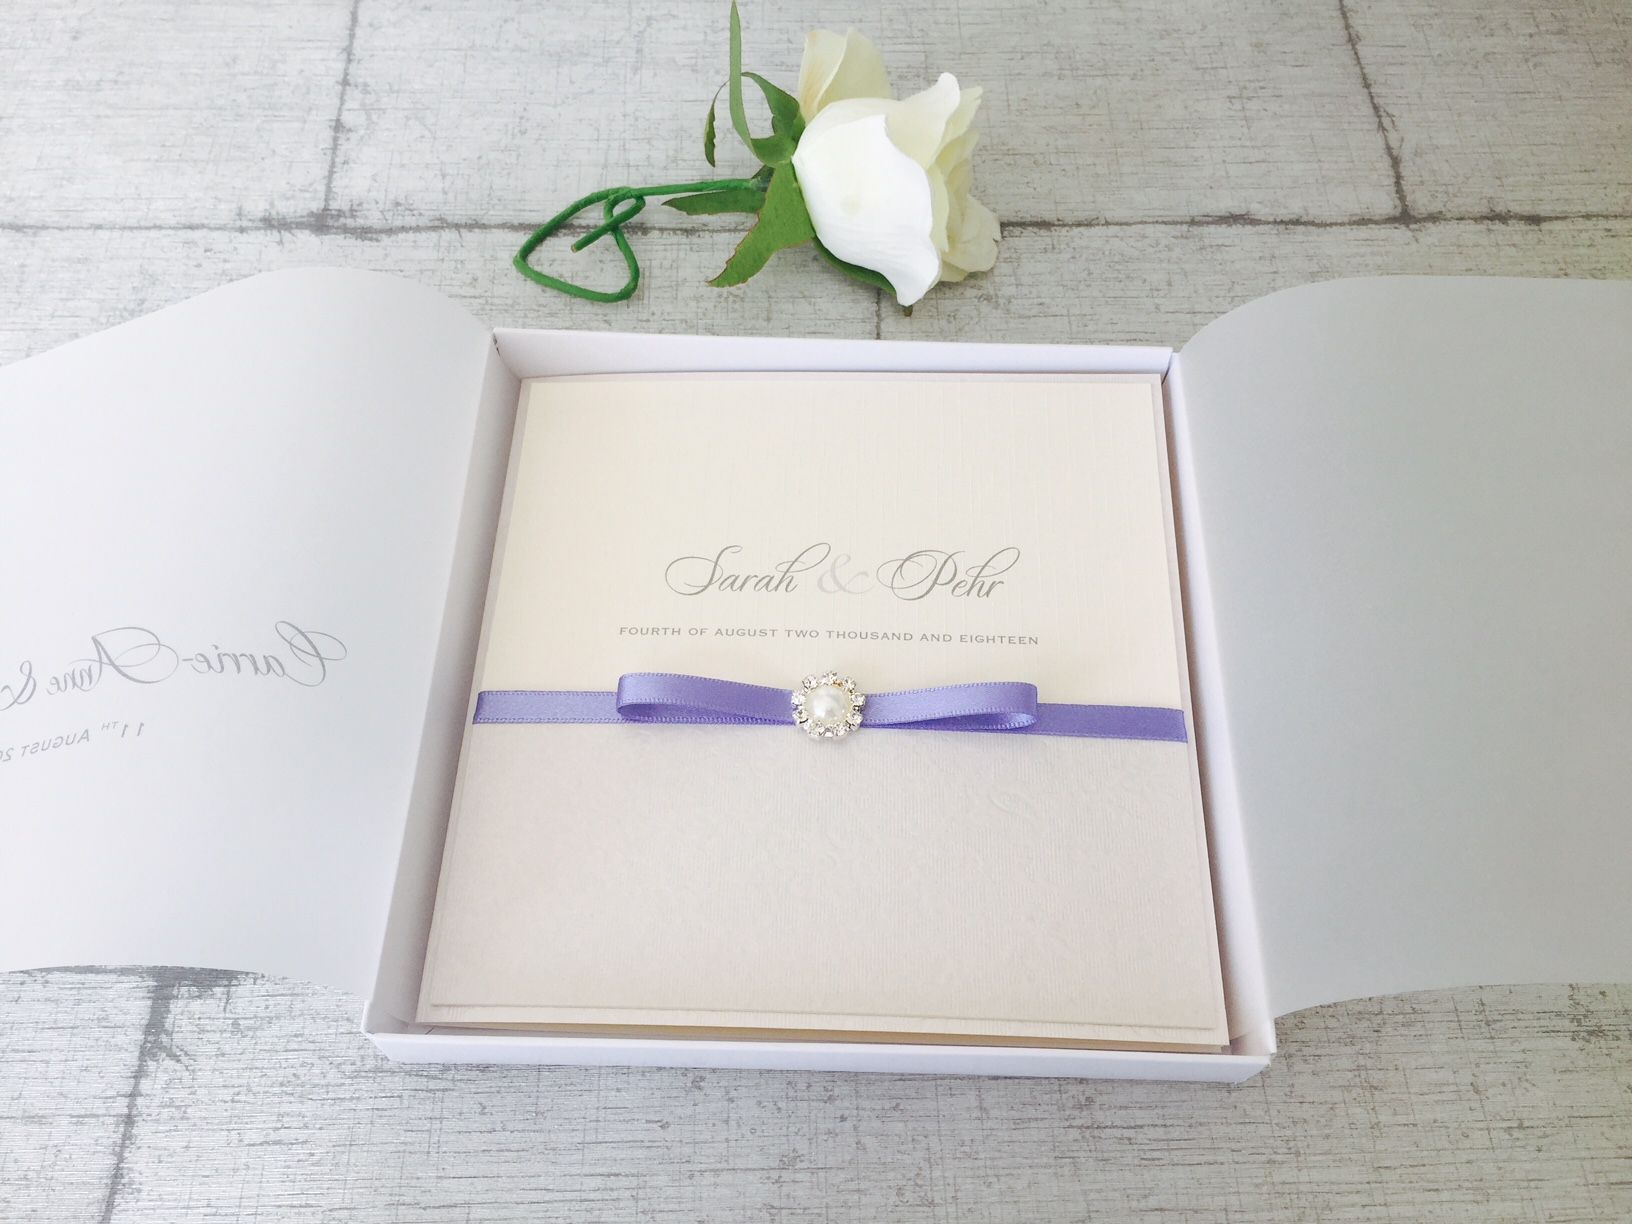 Pearl wedding invitations in box